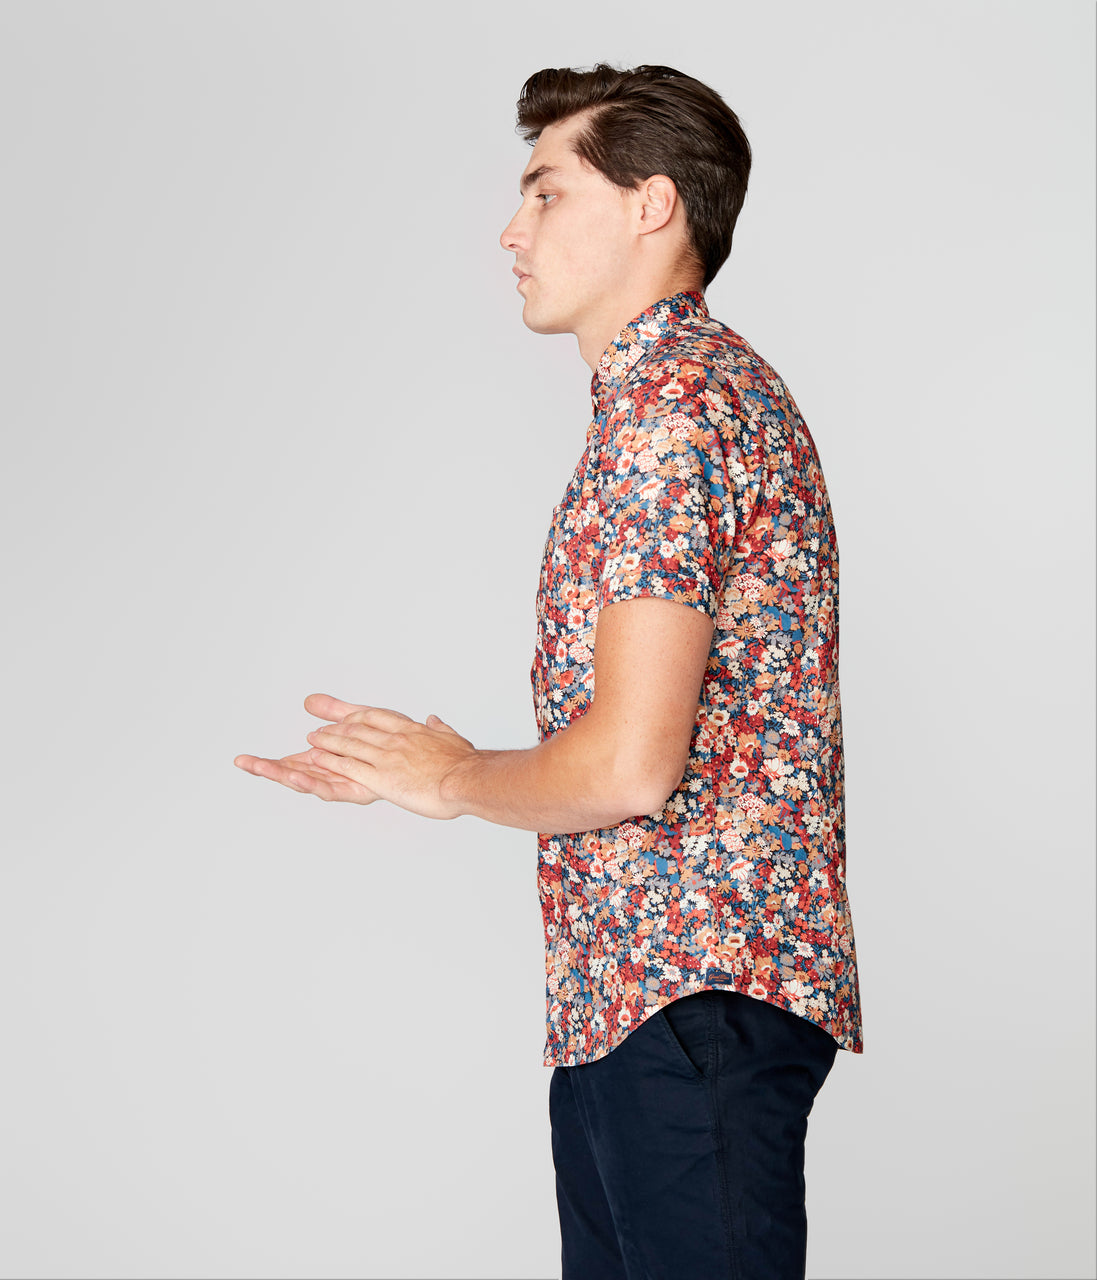 Woven On-Point Shirt - Navy Harvest English Floral - Good Man Brand - Woven On-Point Shirt - Navy Harvest English Floral